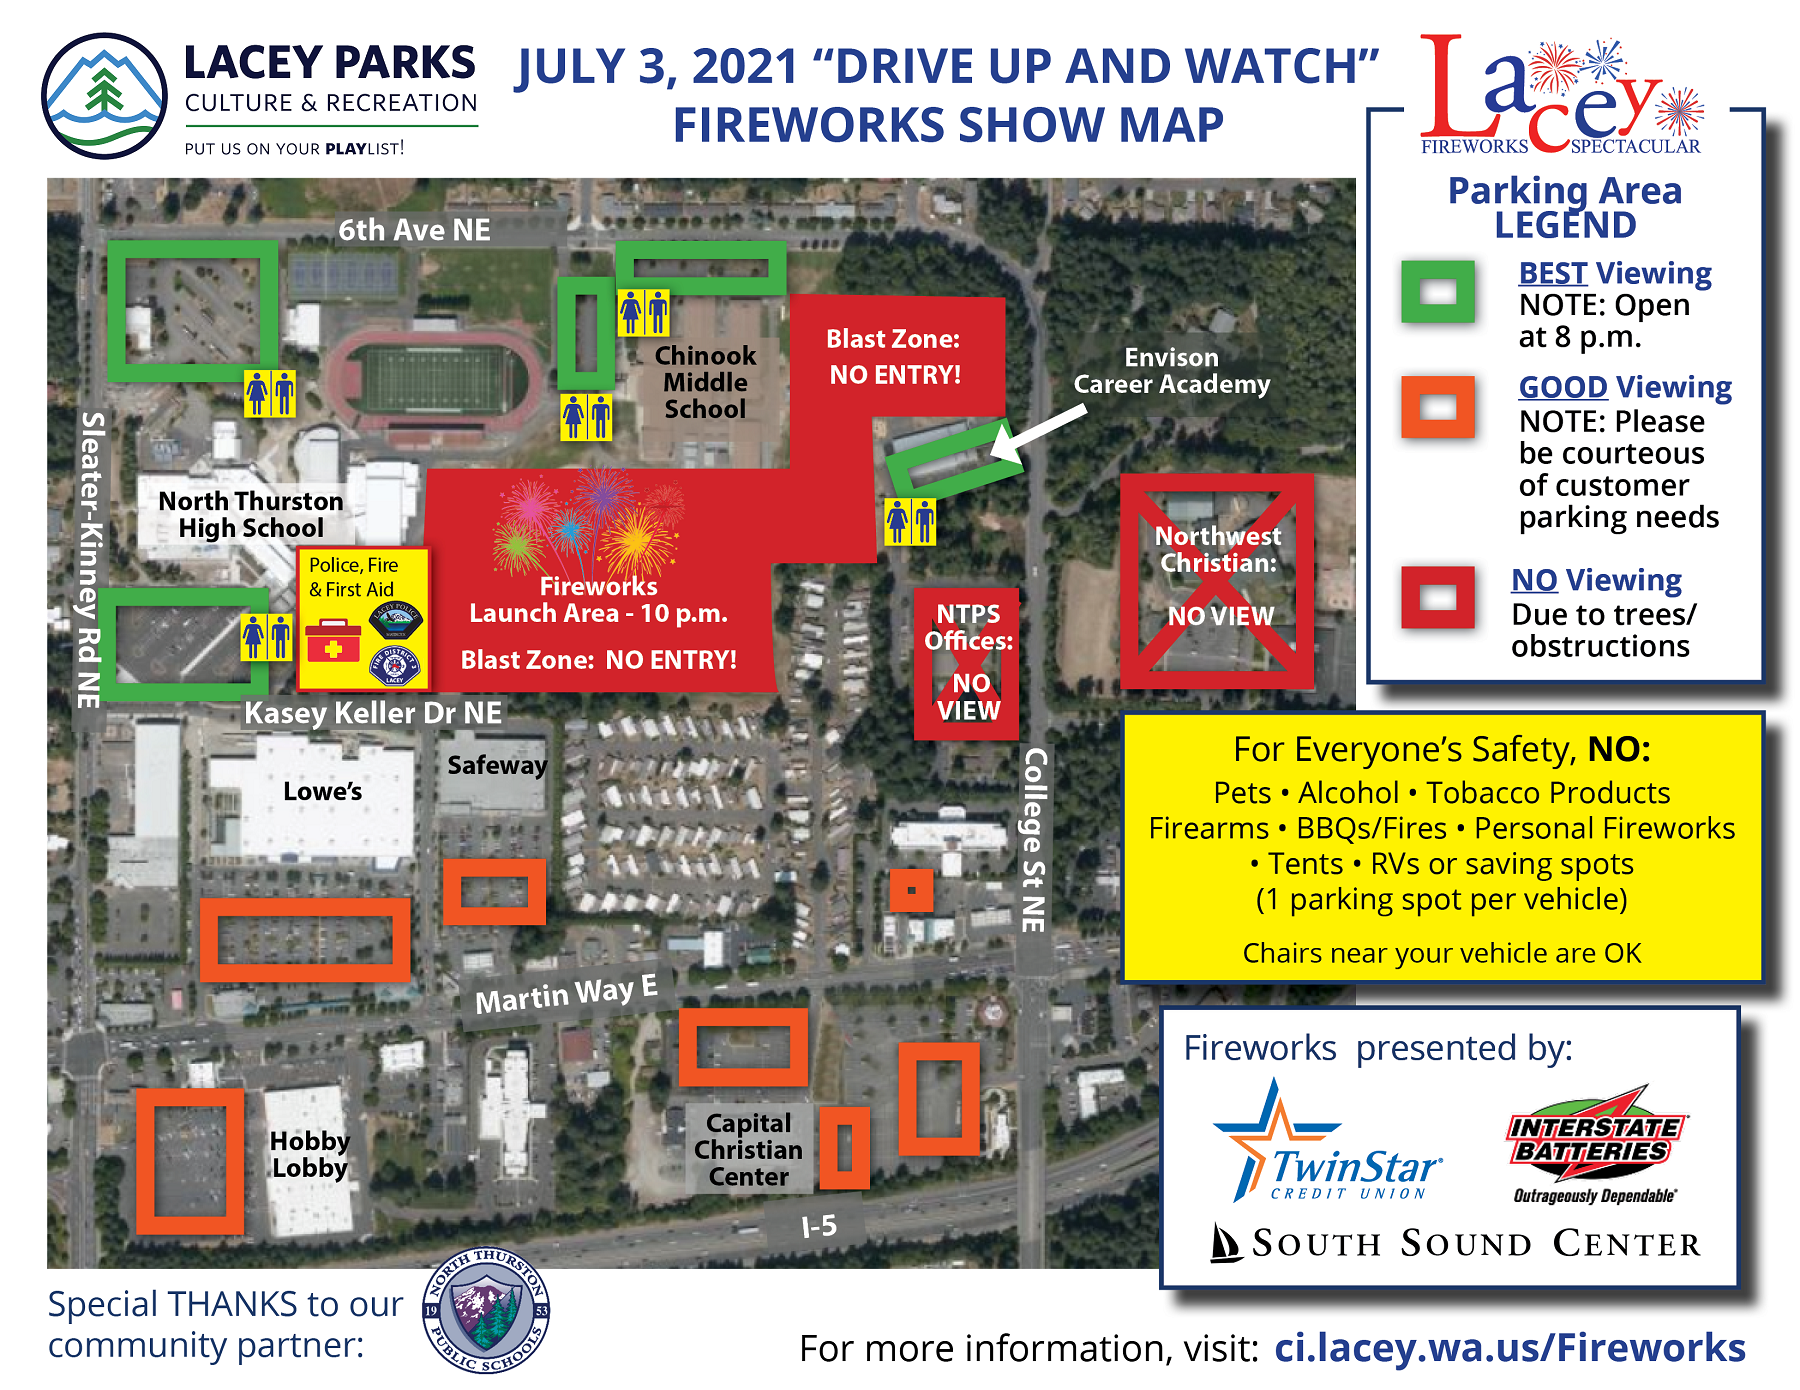 City of Lacey Fireworks July 3 2021